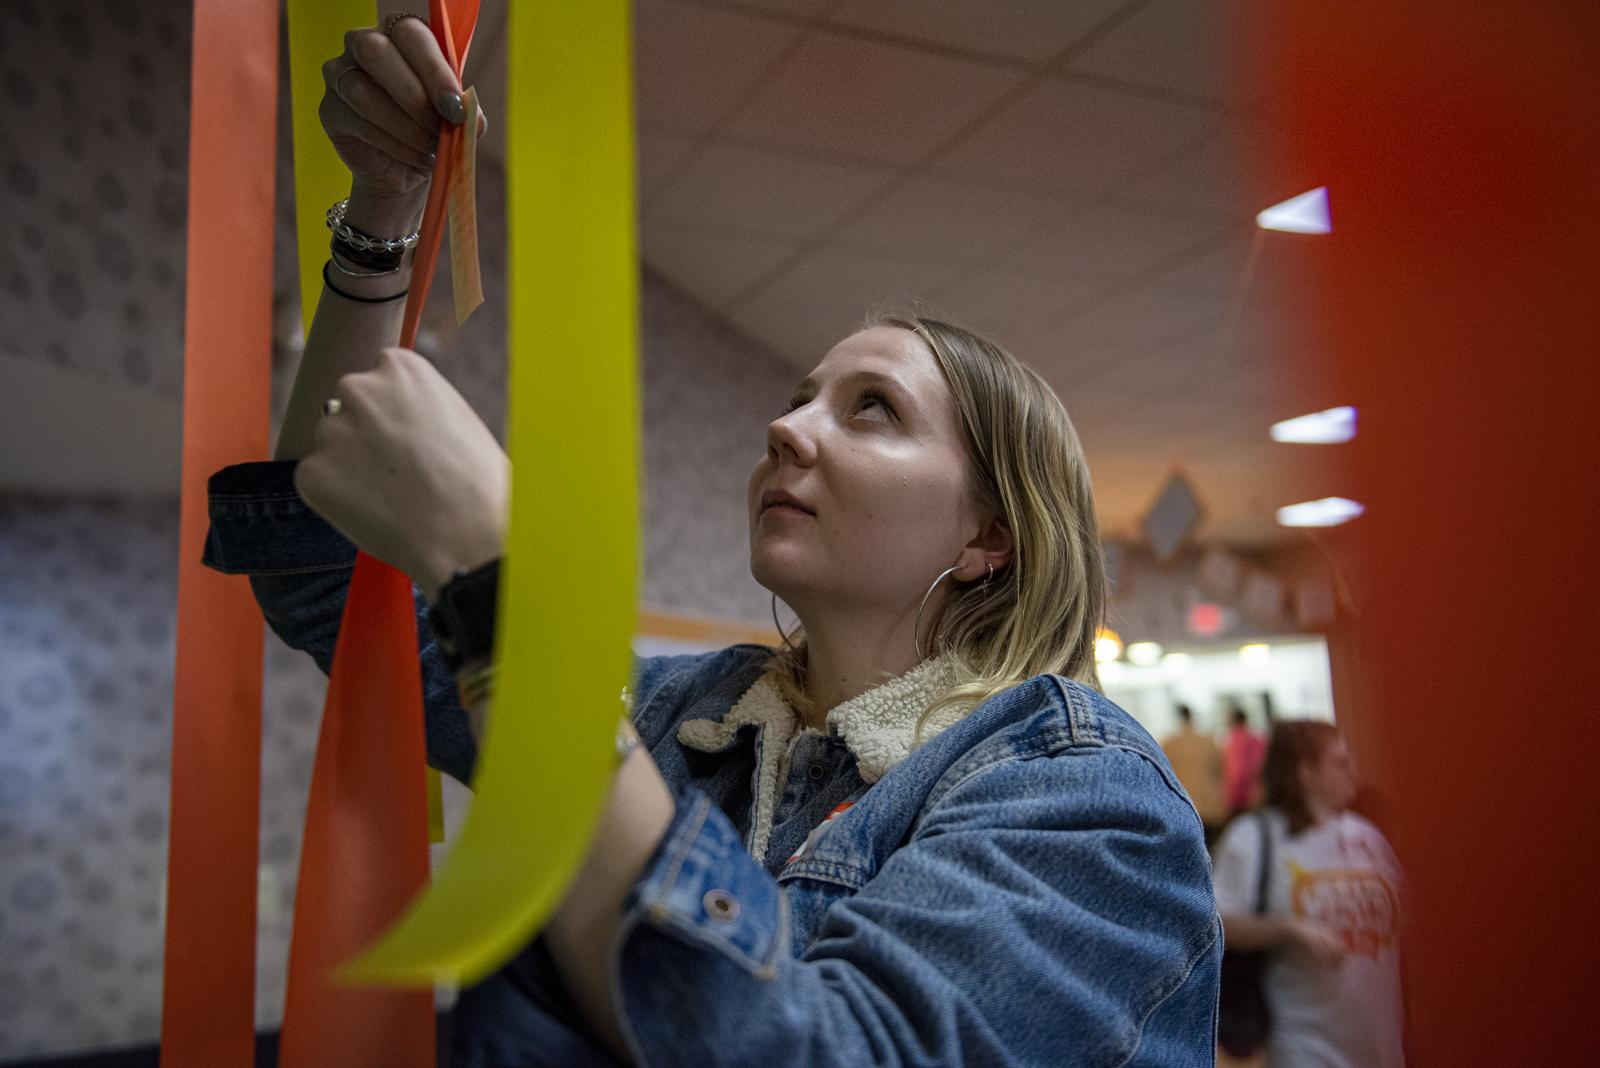 Grace Pfeifer, 21, a student from the College of New Jersey, hangs strips of short stories written from students of her school at the 10th anniversary of Best Day of My Life So Far, on Friday, Nov. 8, 2019, at Philadelphia Senior Center, in Philadelphia, Pa.